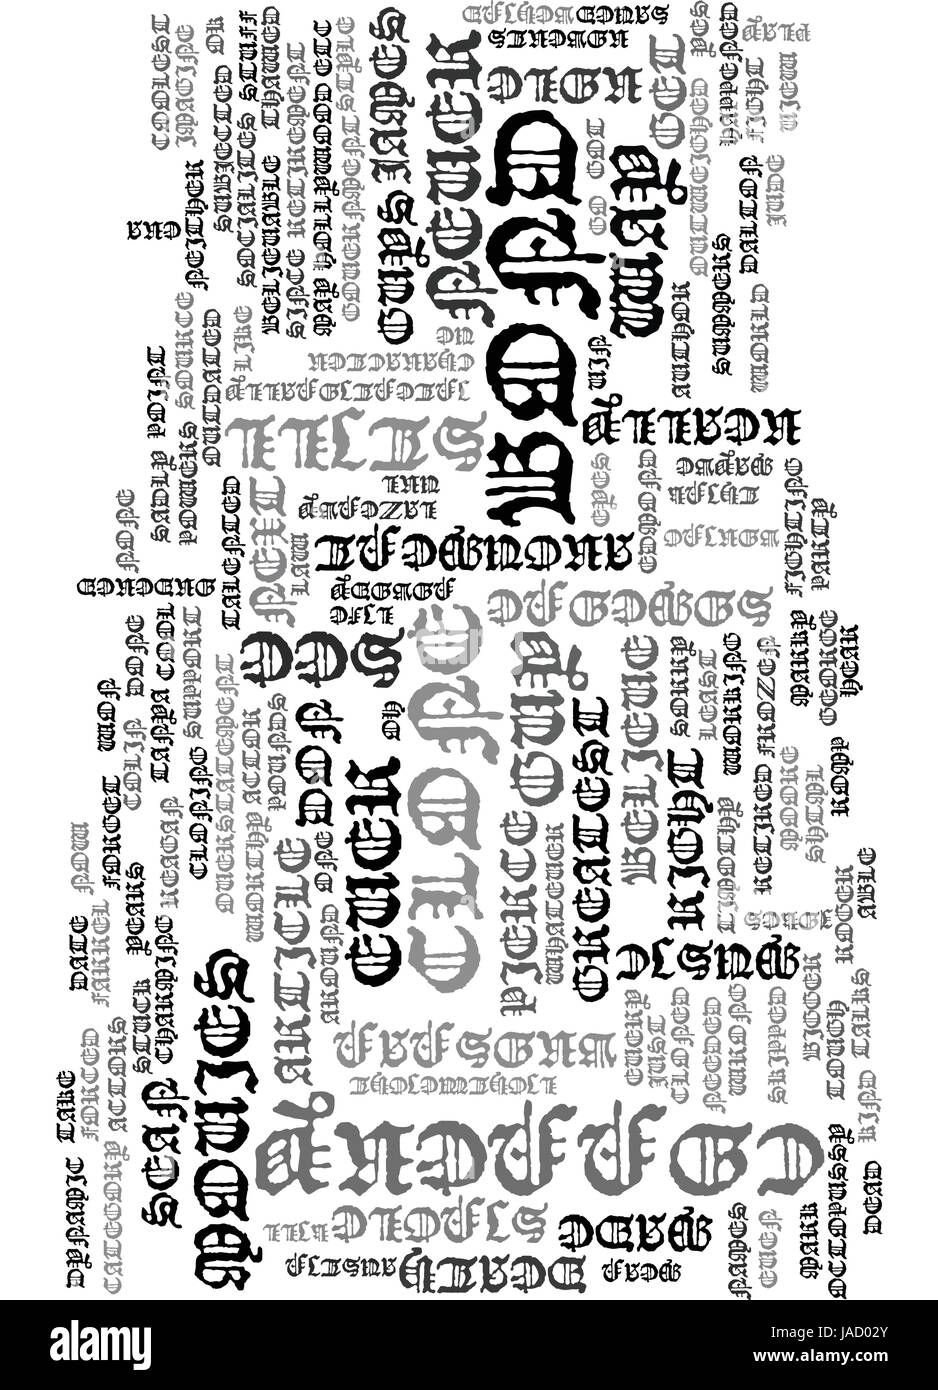 WHATEVER HAPPENED TO JAMES BOND TEXT WORD CLOUD CONCEPT - Stock Vector